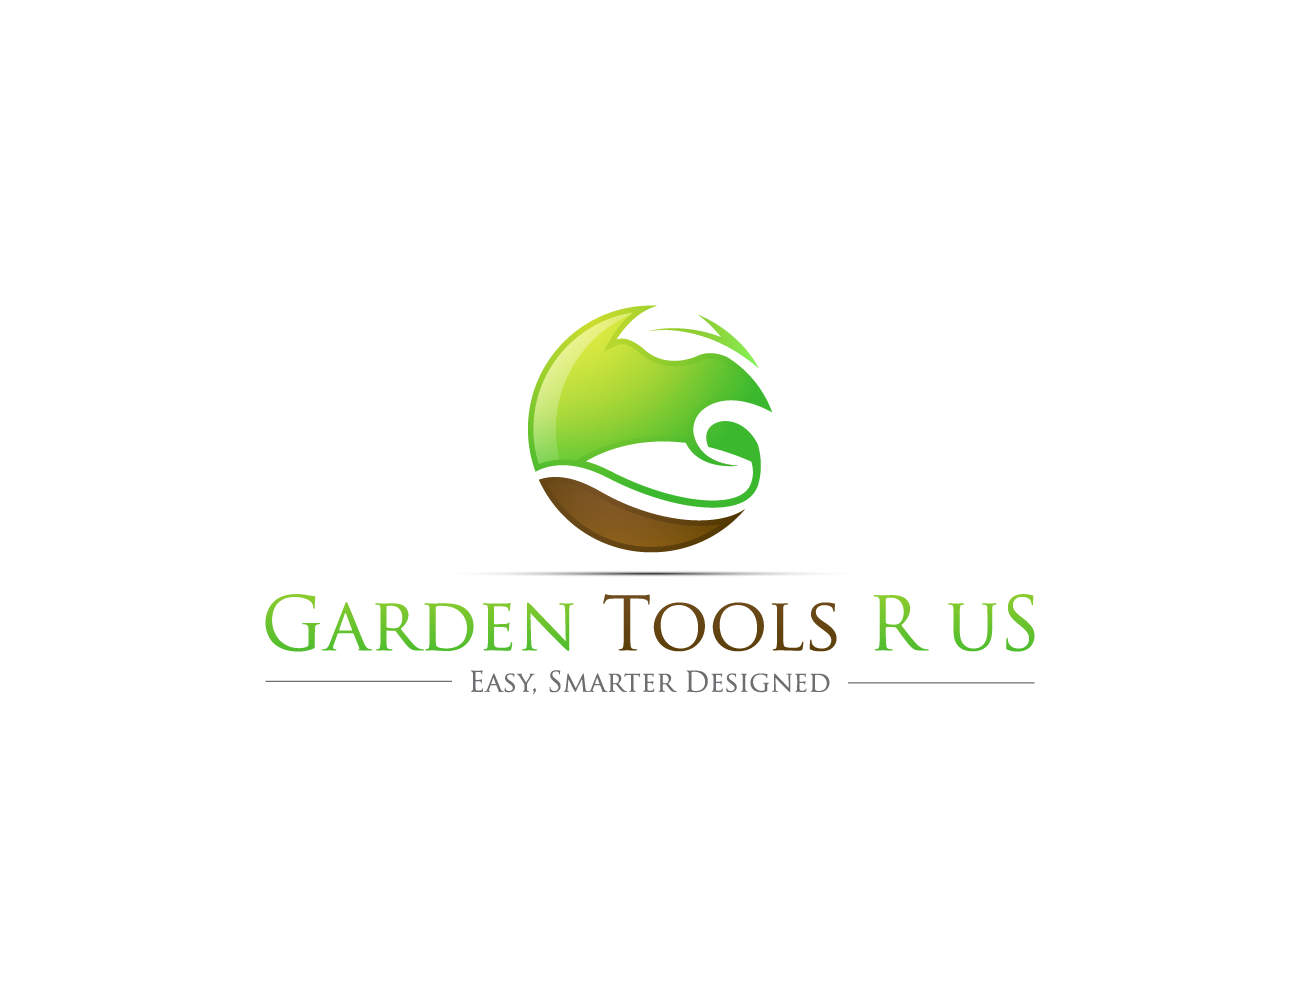 Logo Design By En_drow For Easy To Use, Smarter Designed Garden Tool  Business Needs A